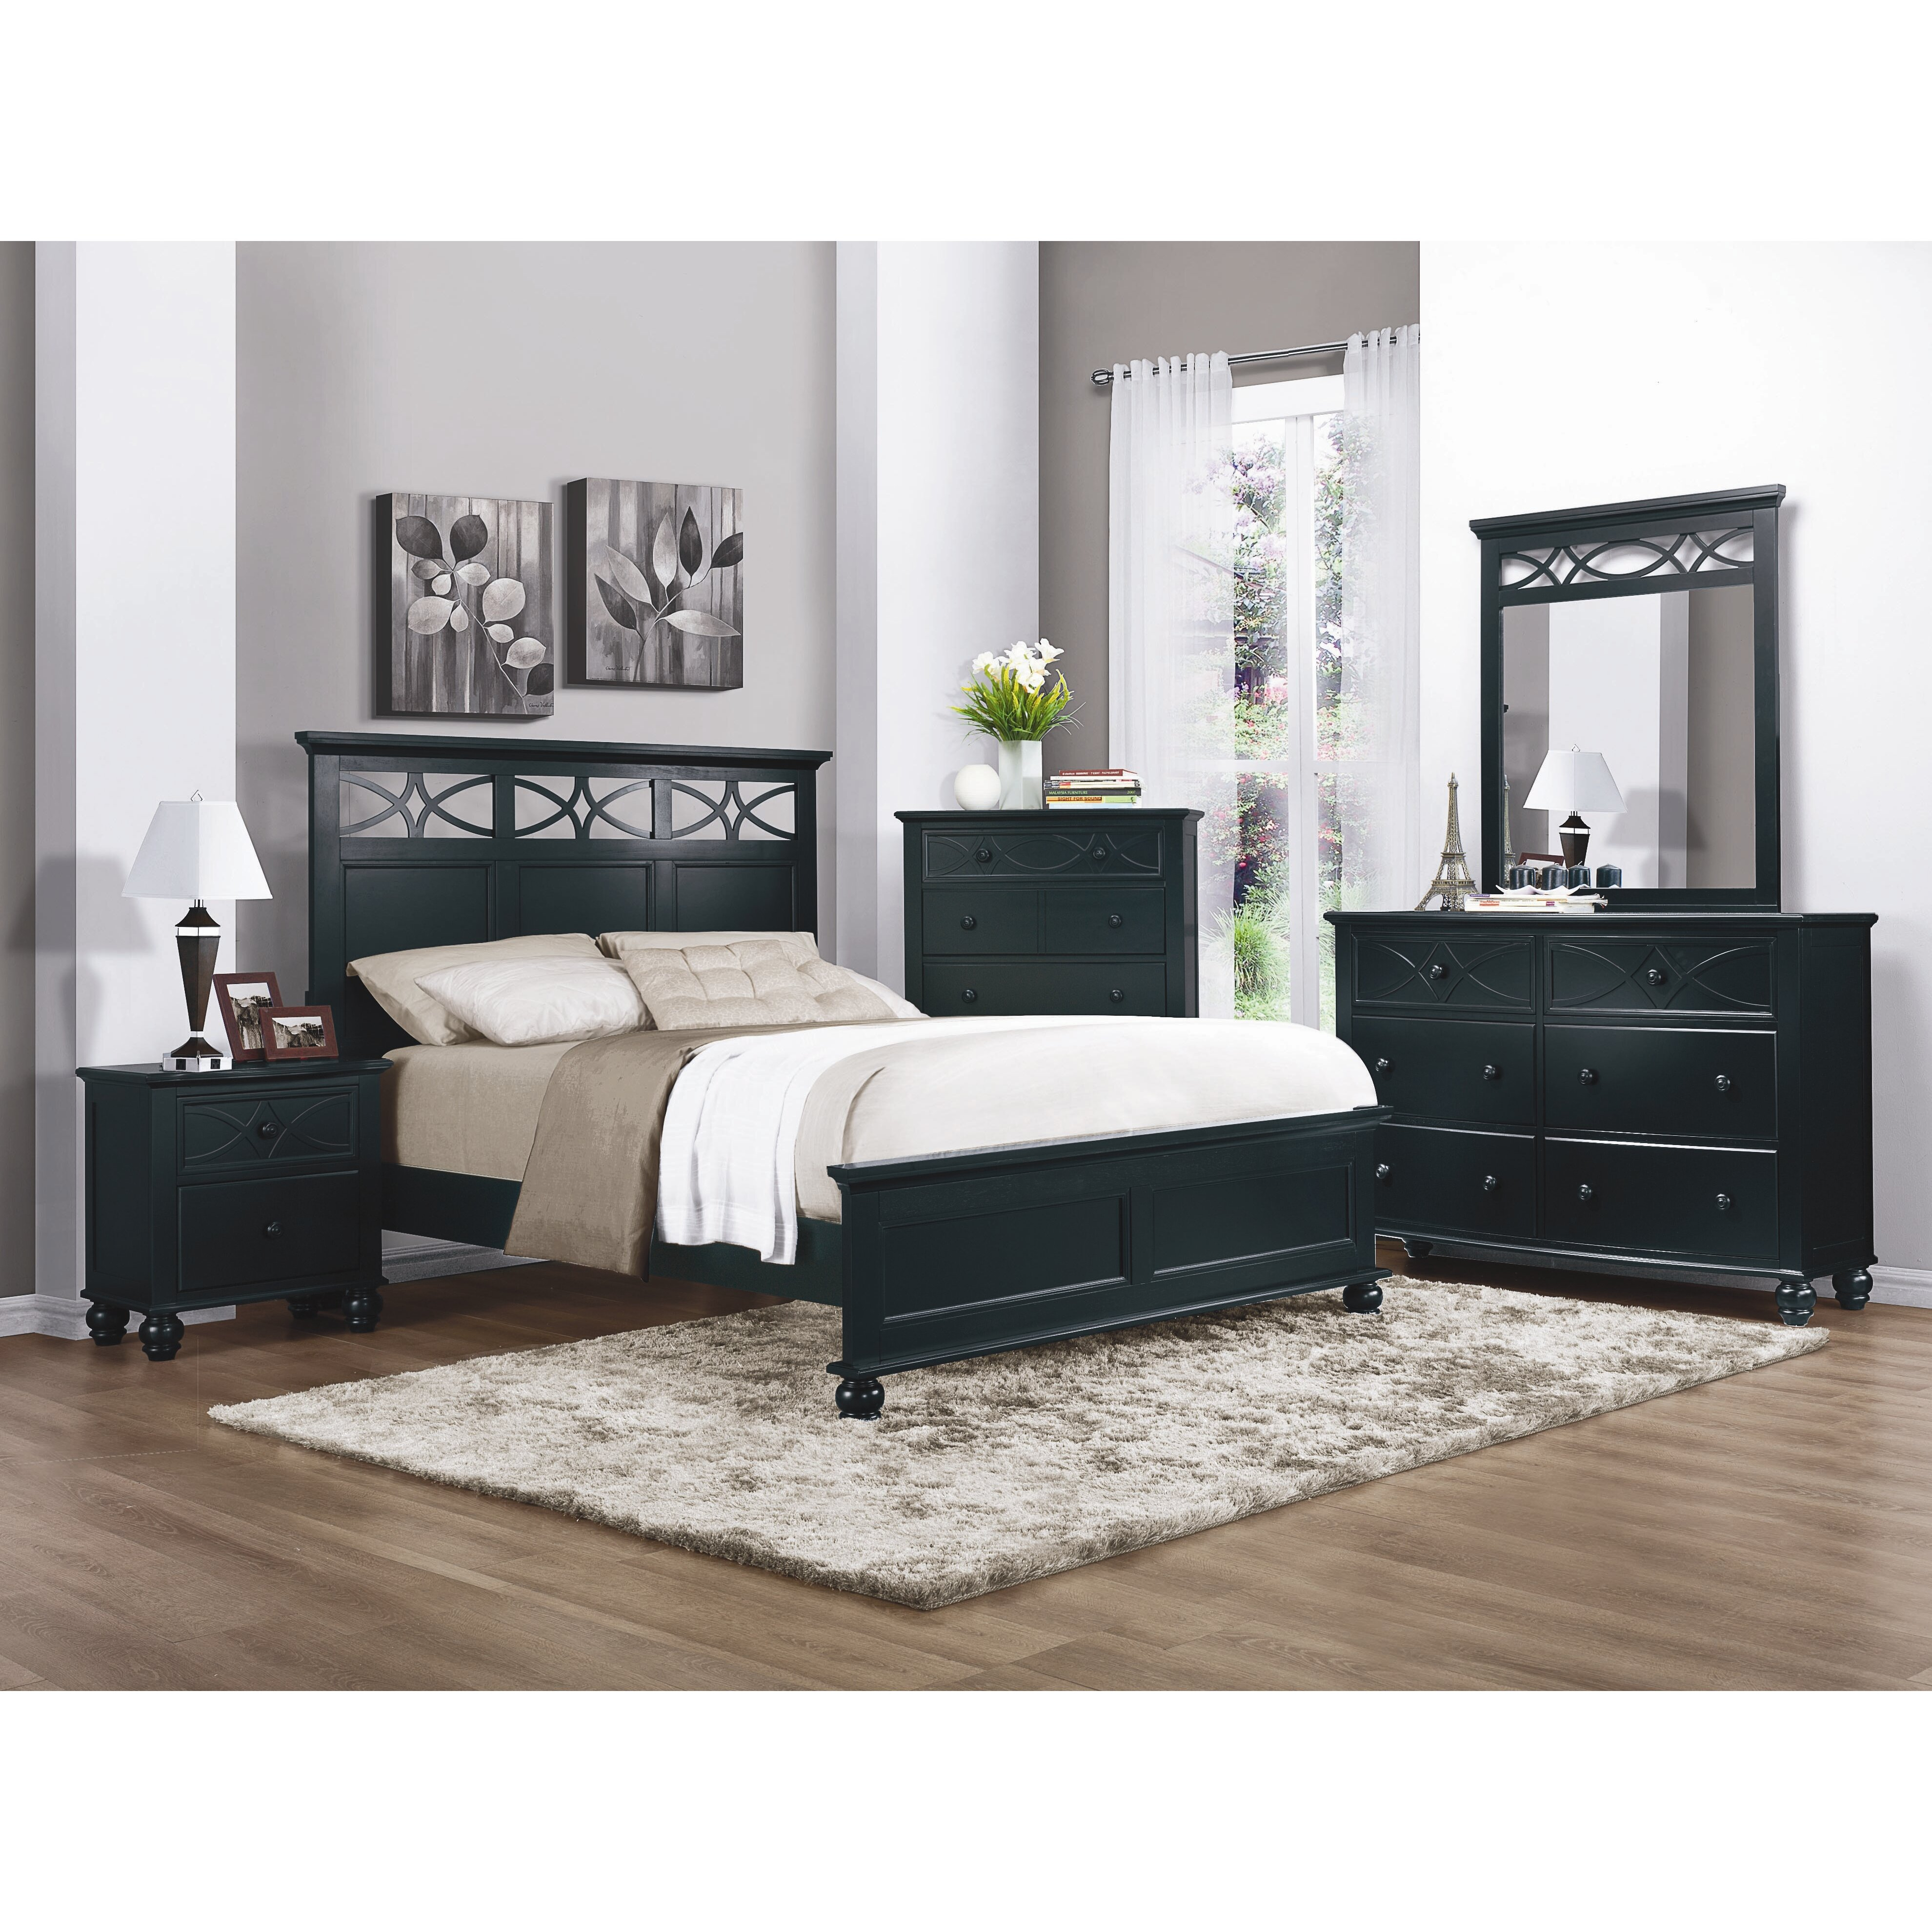 woodhaven hill sanibel panel customizable bedroom set